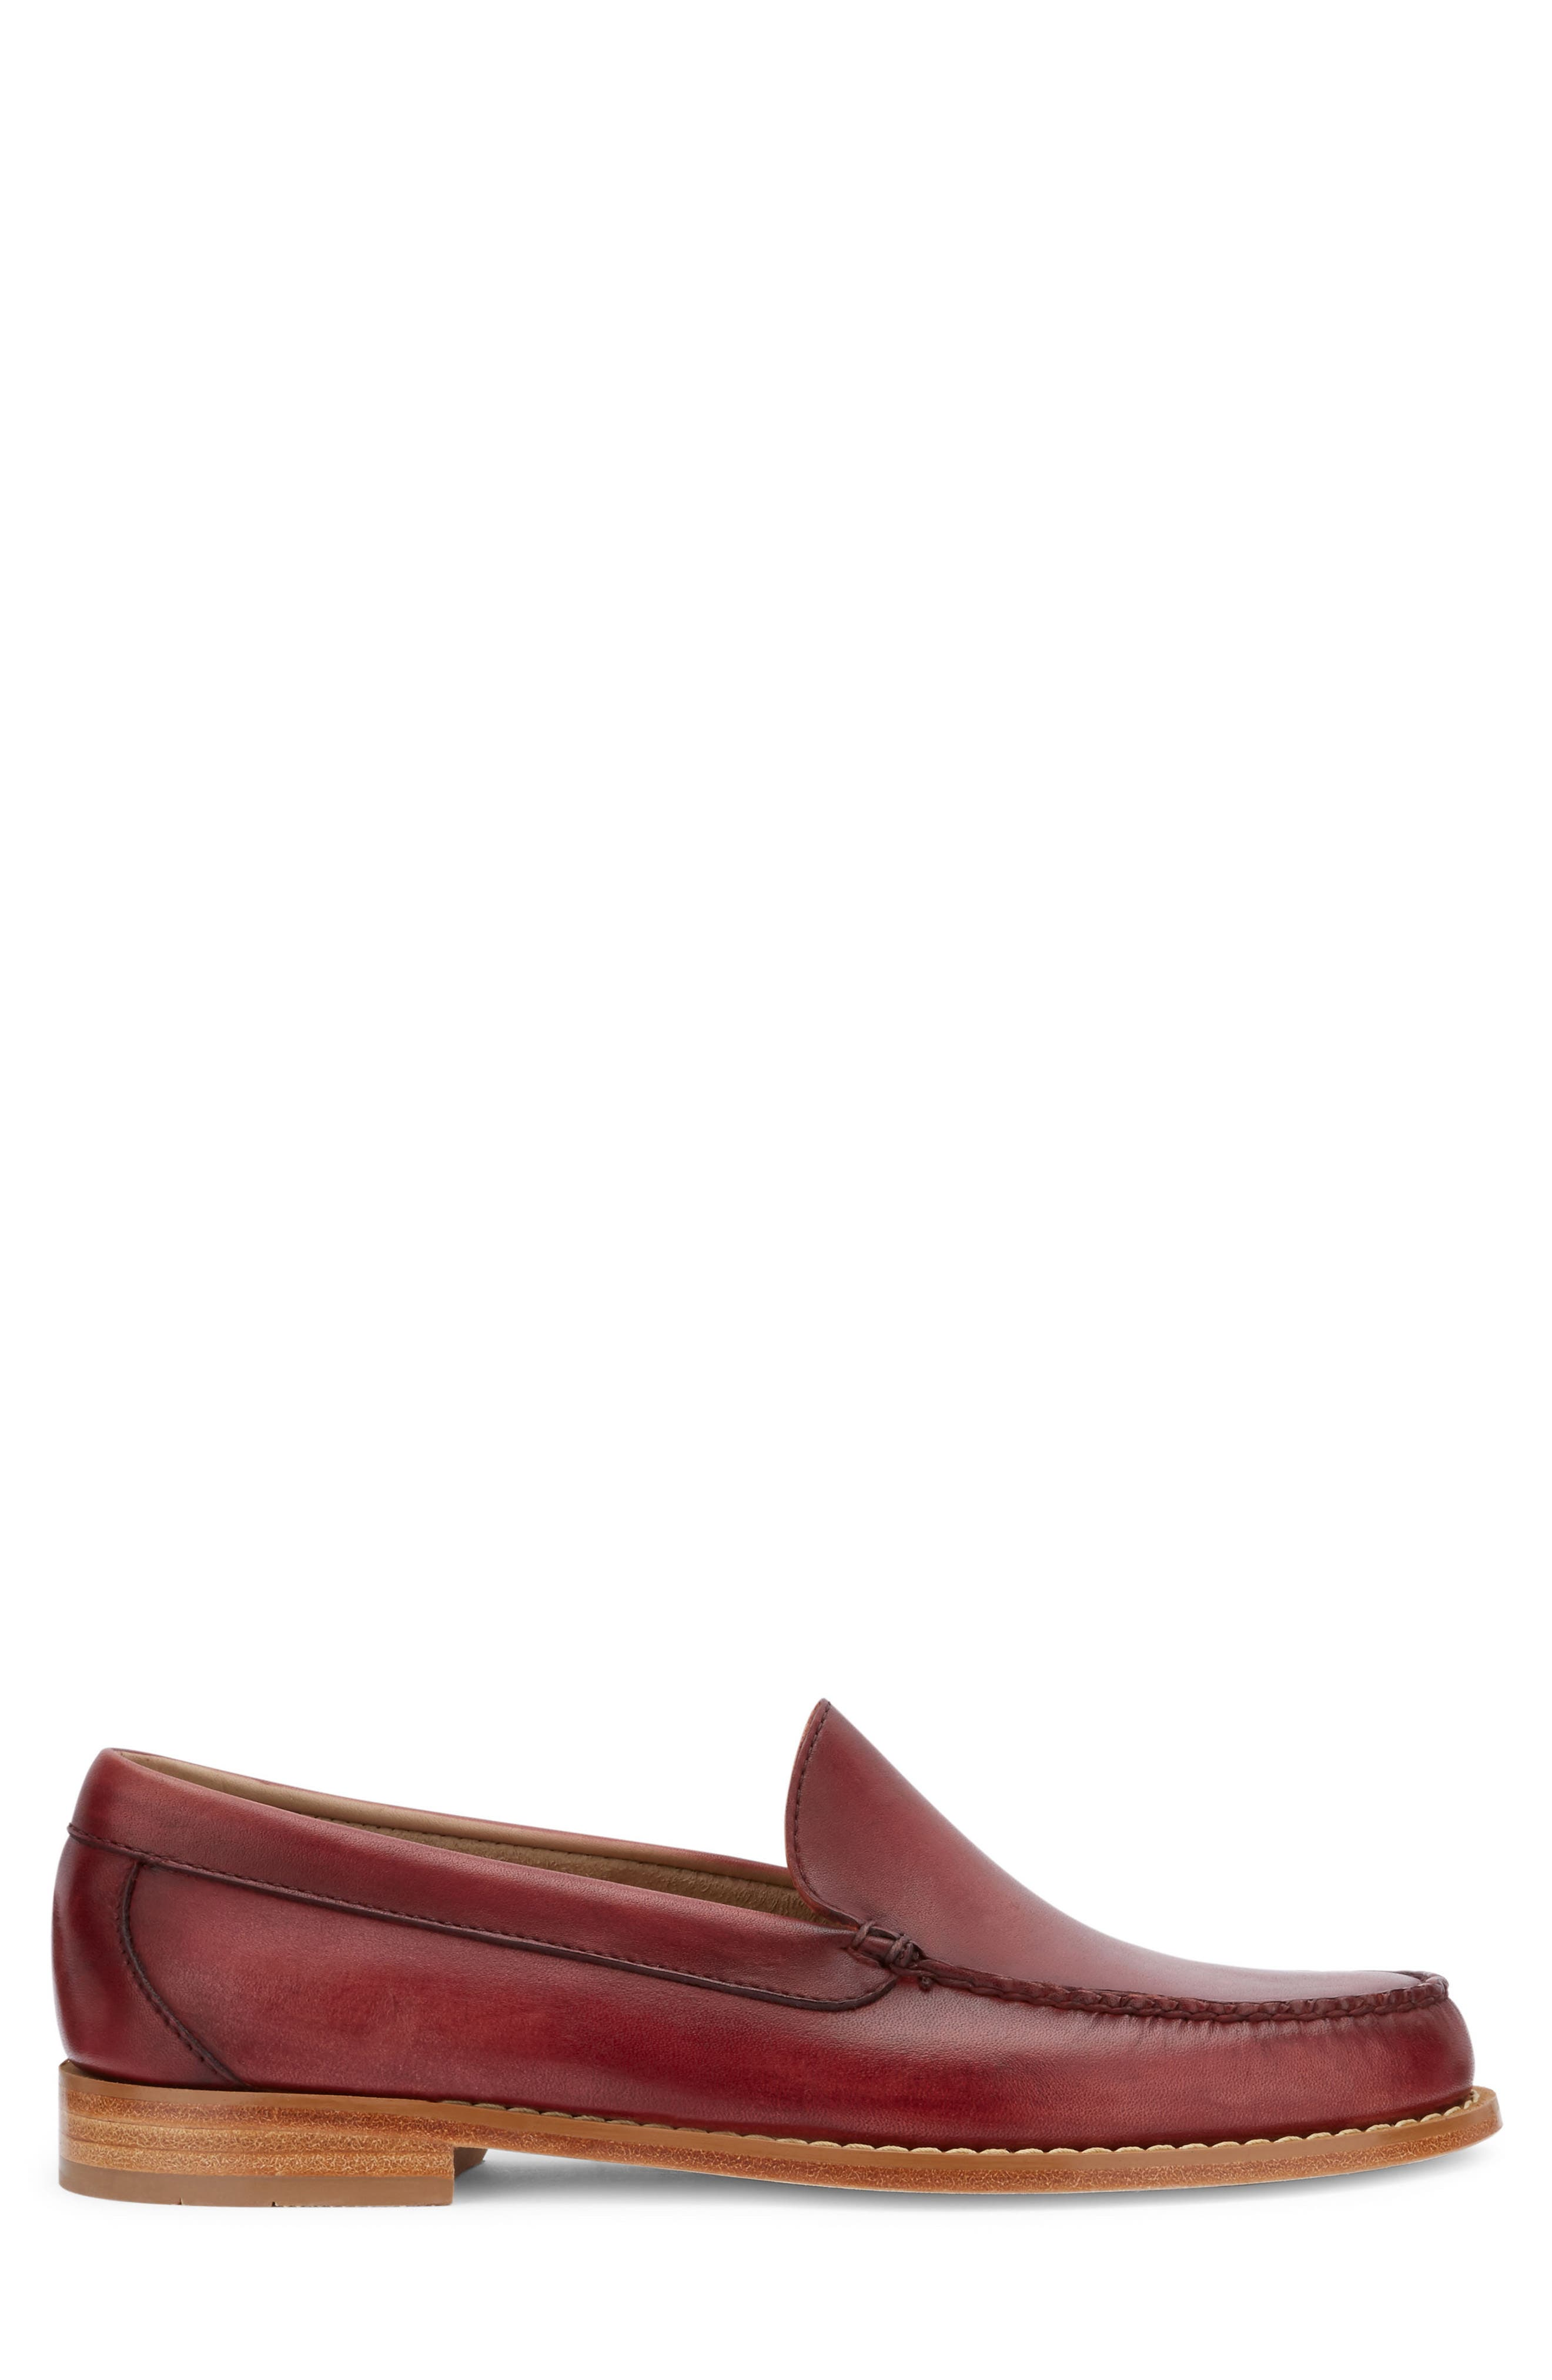 Moc Toe Loafer,                             Alternate thumbnail 3, color,                             RED LEATHER